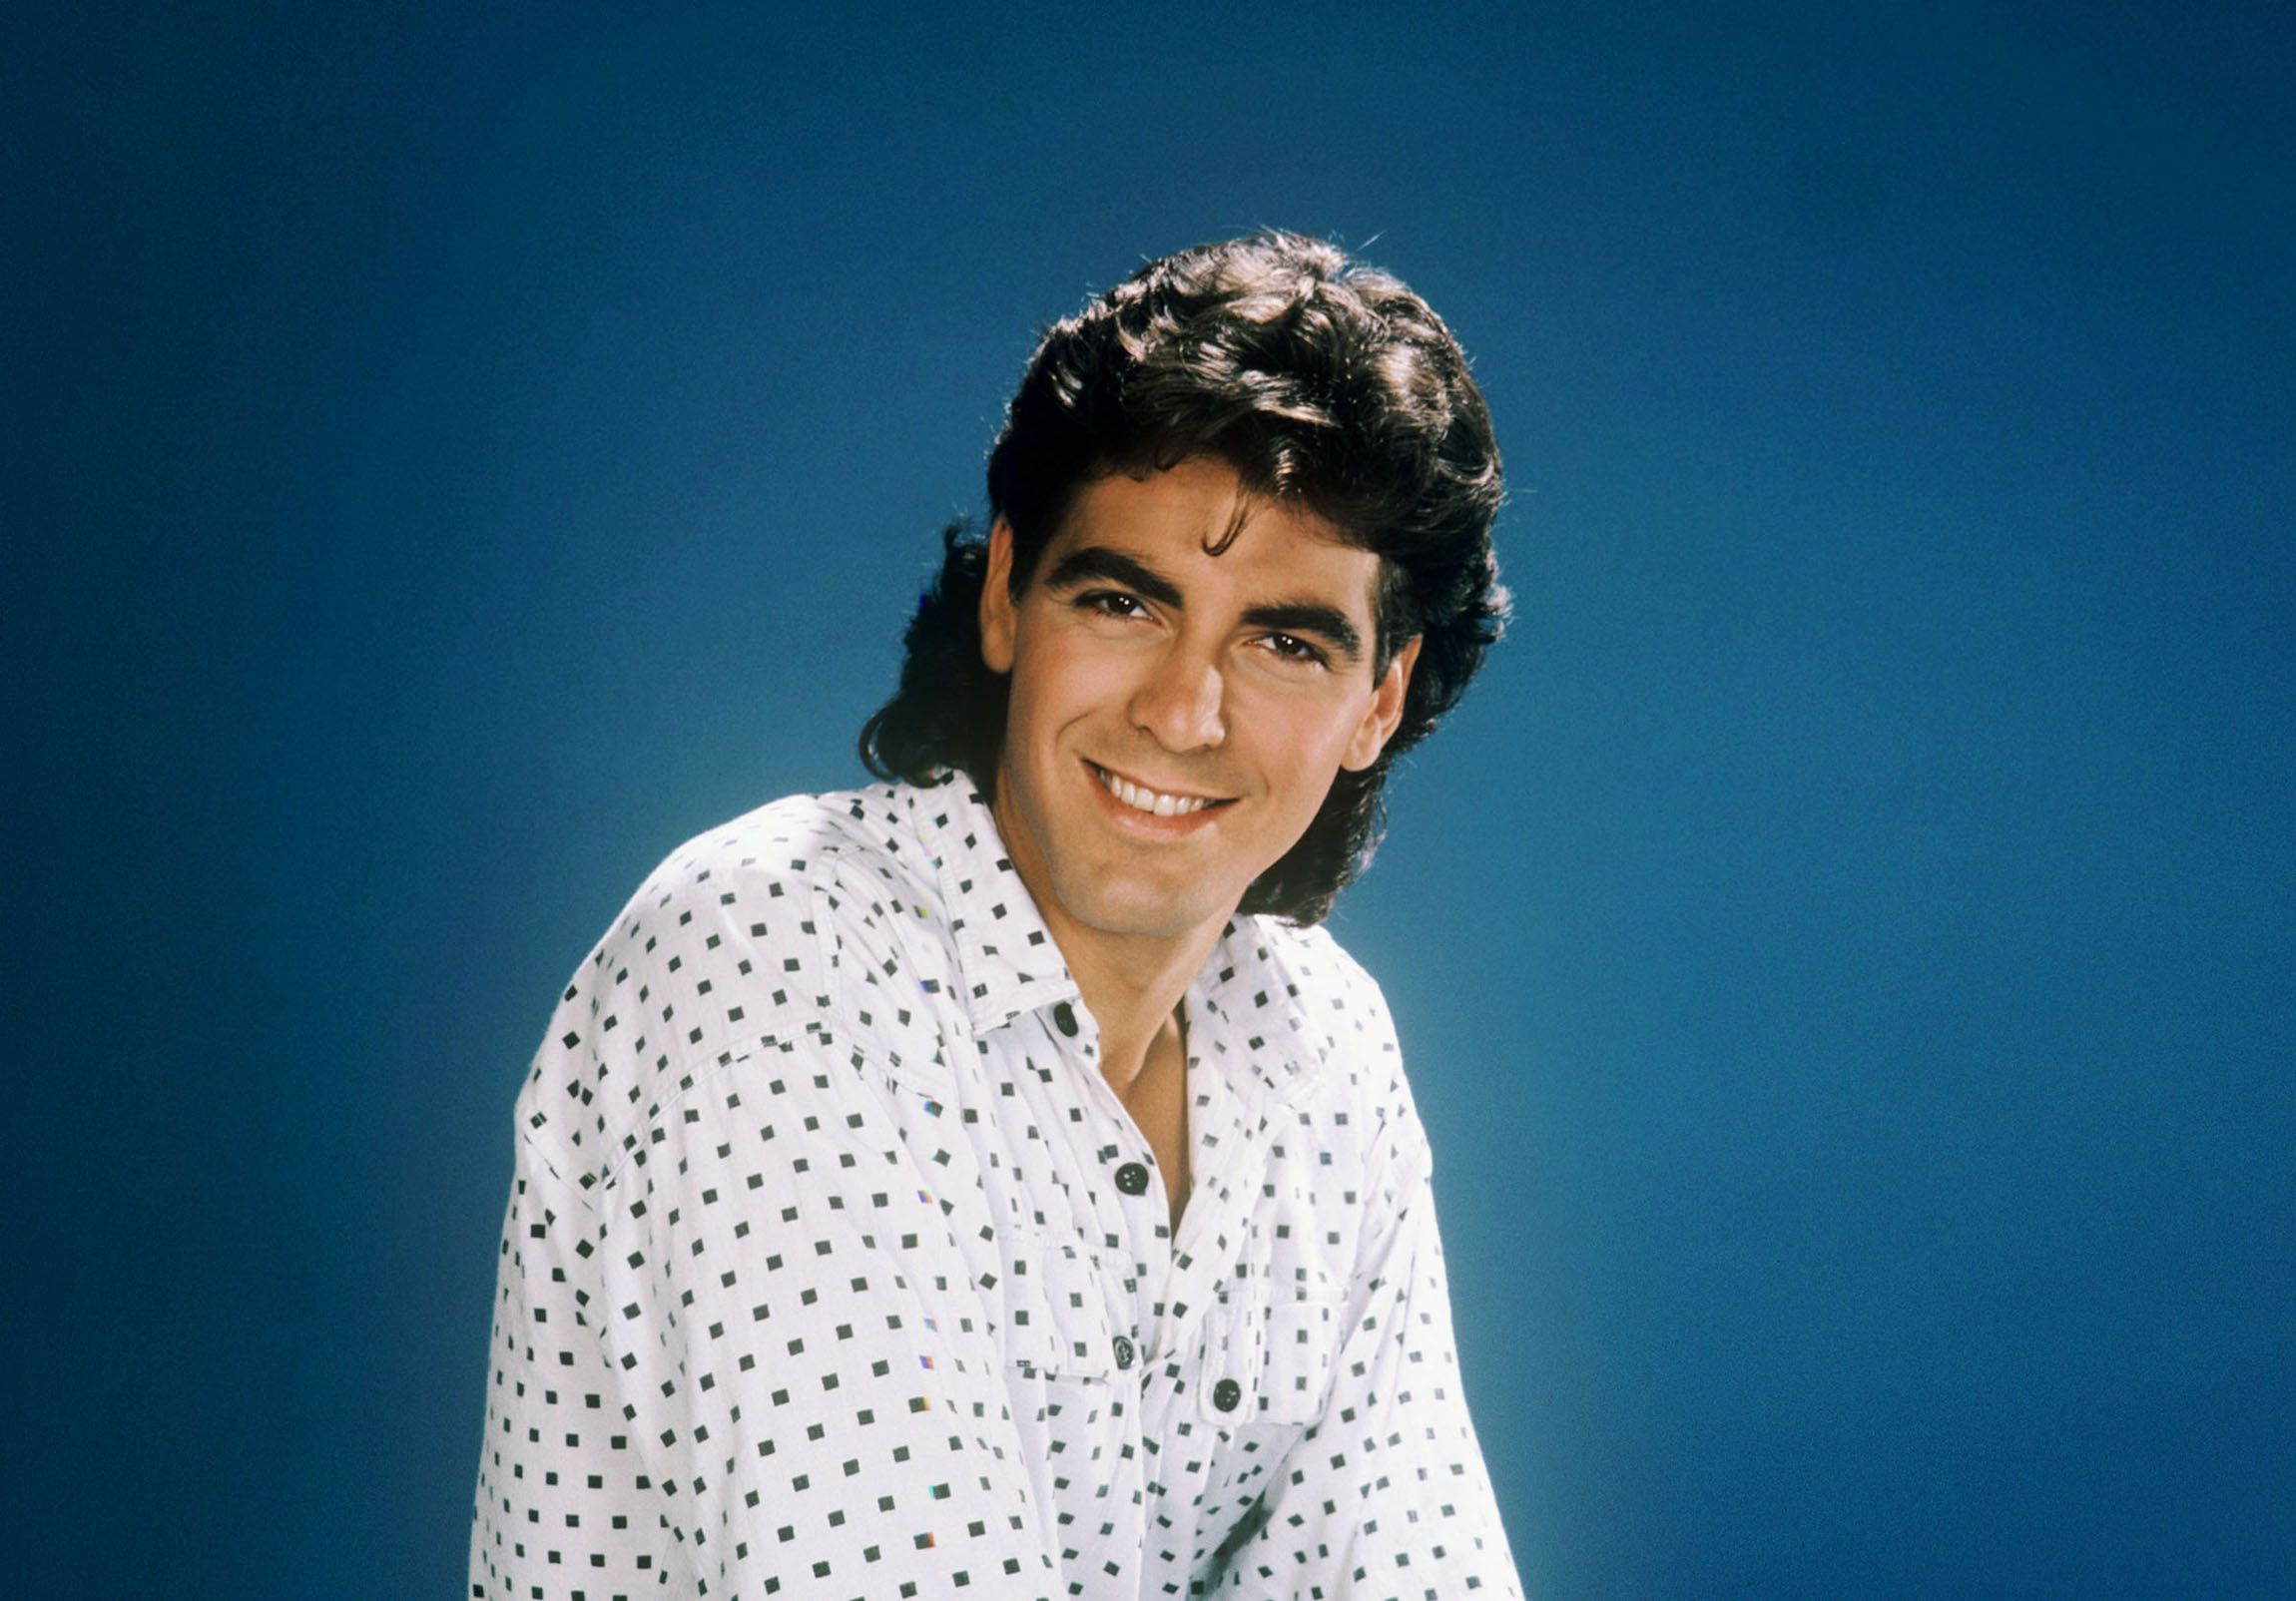 Clooney's portrait for The Facts of Life in 1986.